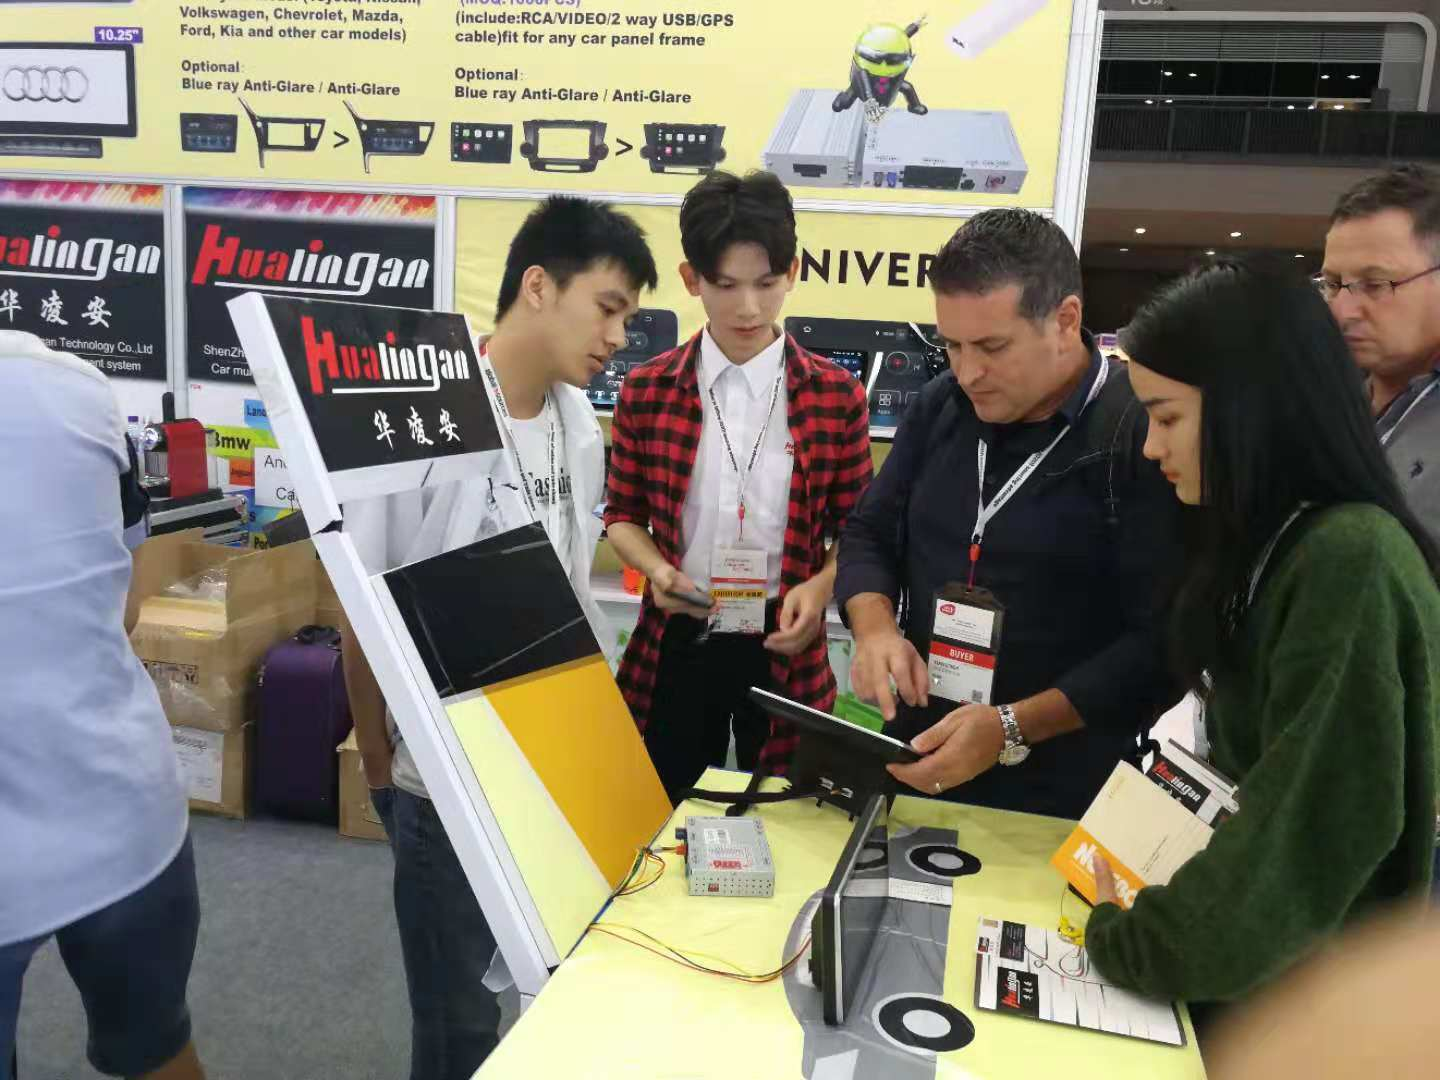 Qctober 11-14, 2018 Global Sources Hong Kong Electronics Fair